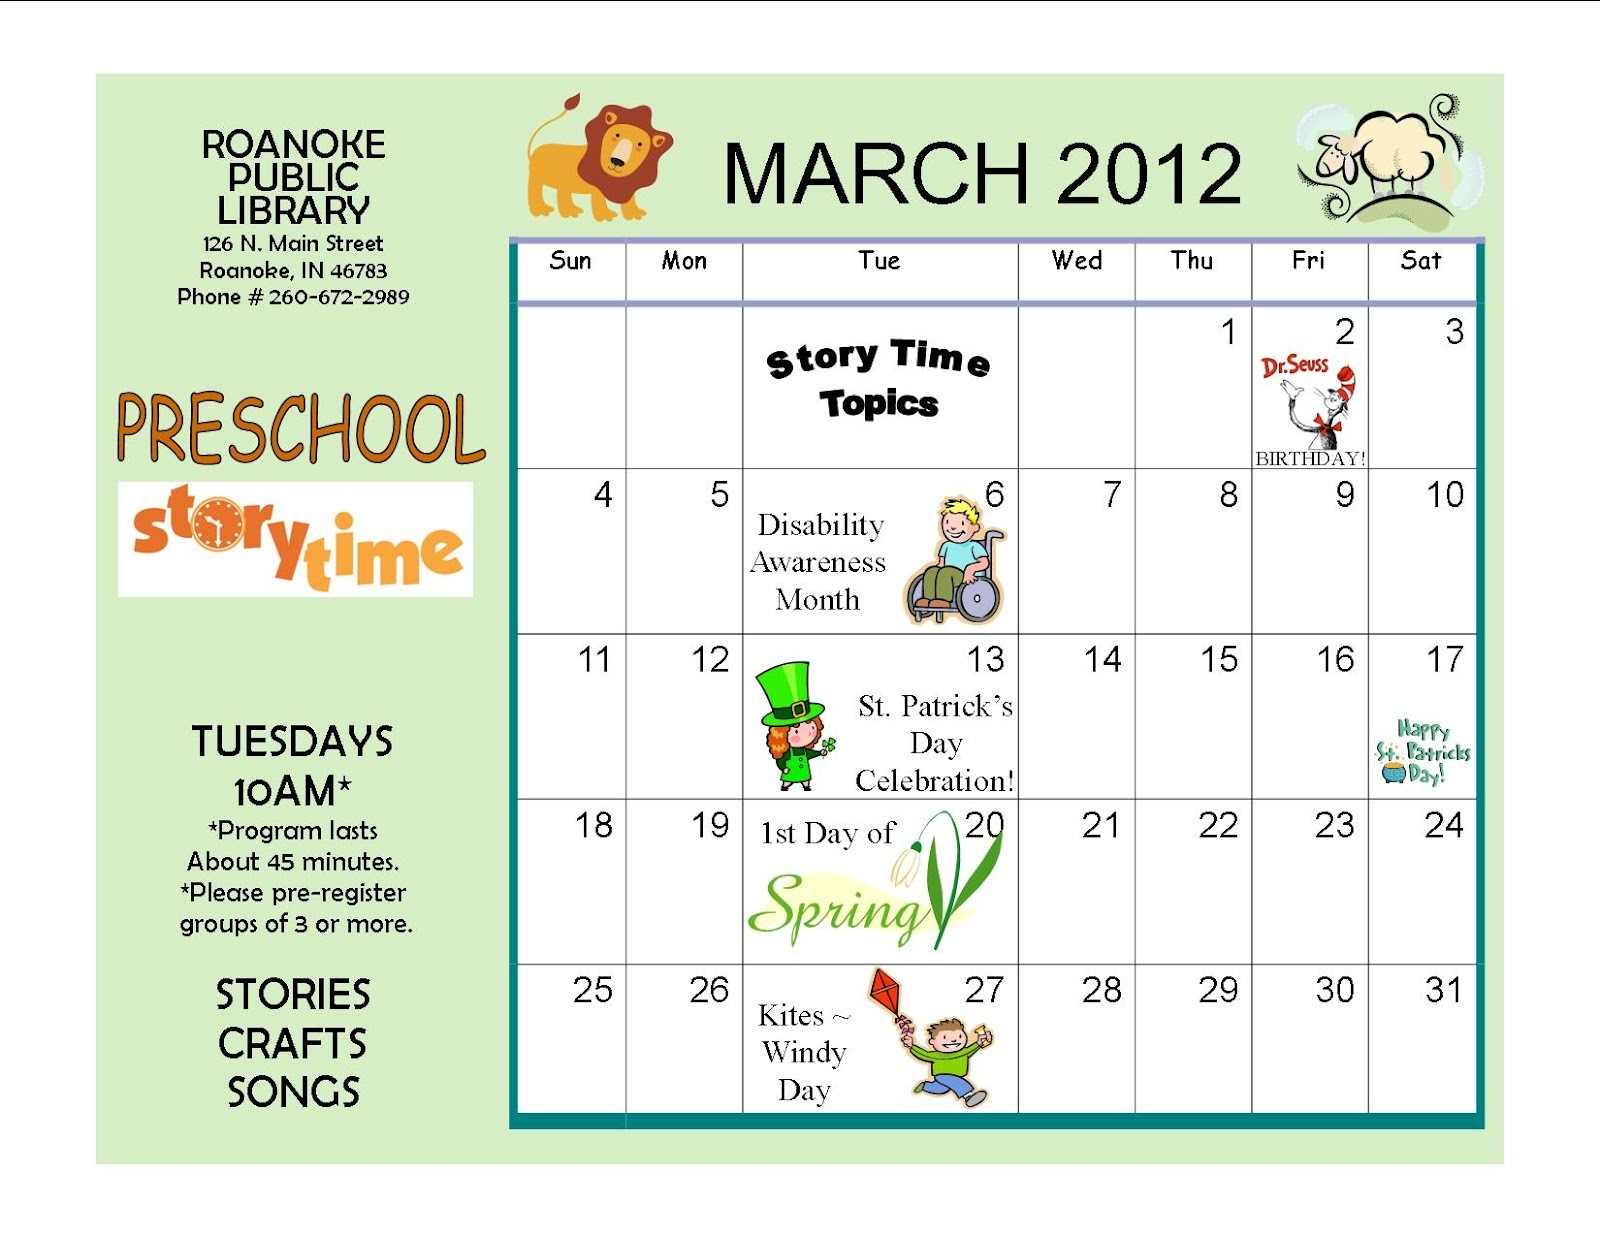 March Calendar for Kids Recientes Preschool Calendar Template Lara Expolicenciaslatam Of March Calendar for Kids Más Arriba-a-fecha Bottle Kids Live at Burnham Park Hall Burnham Park Hall London [1